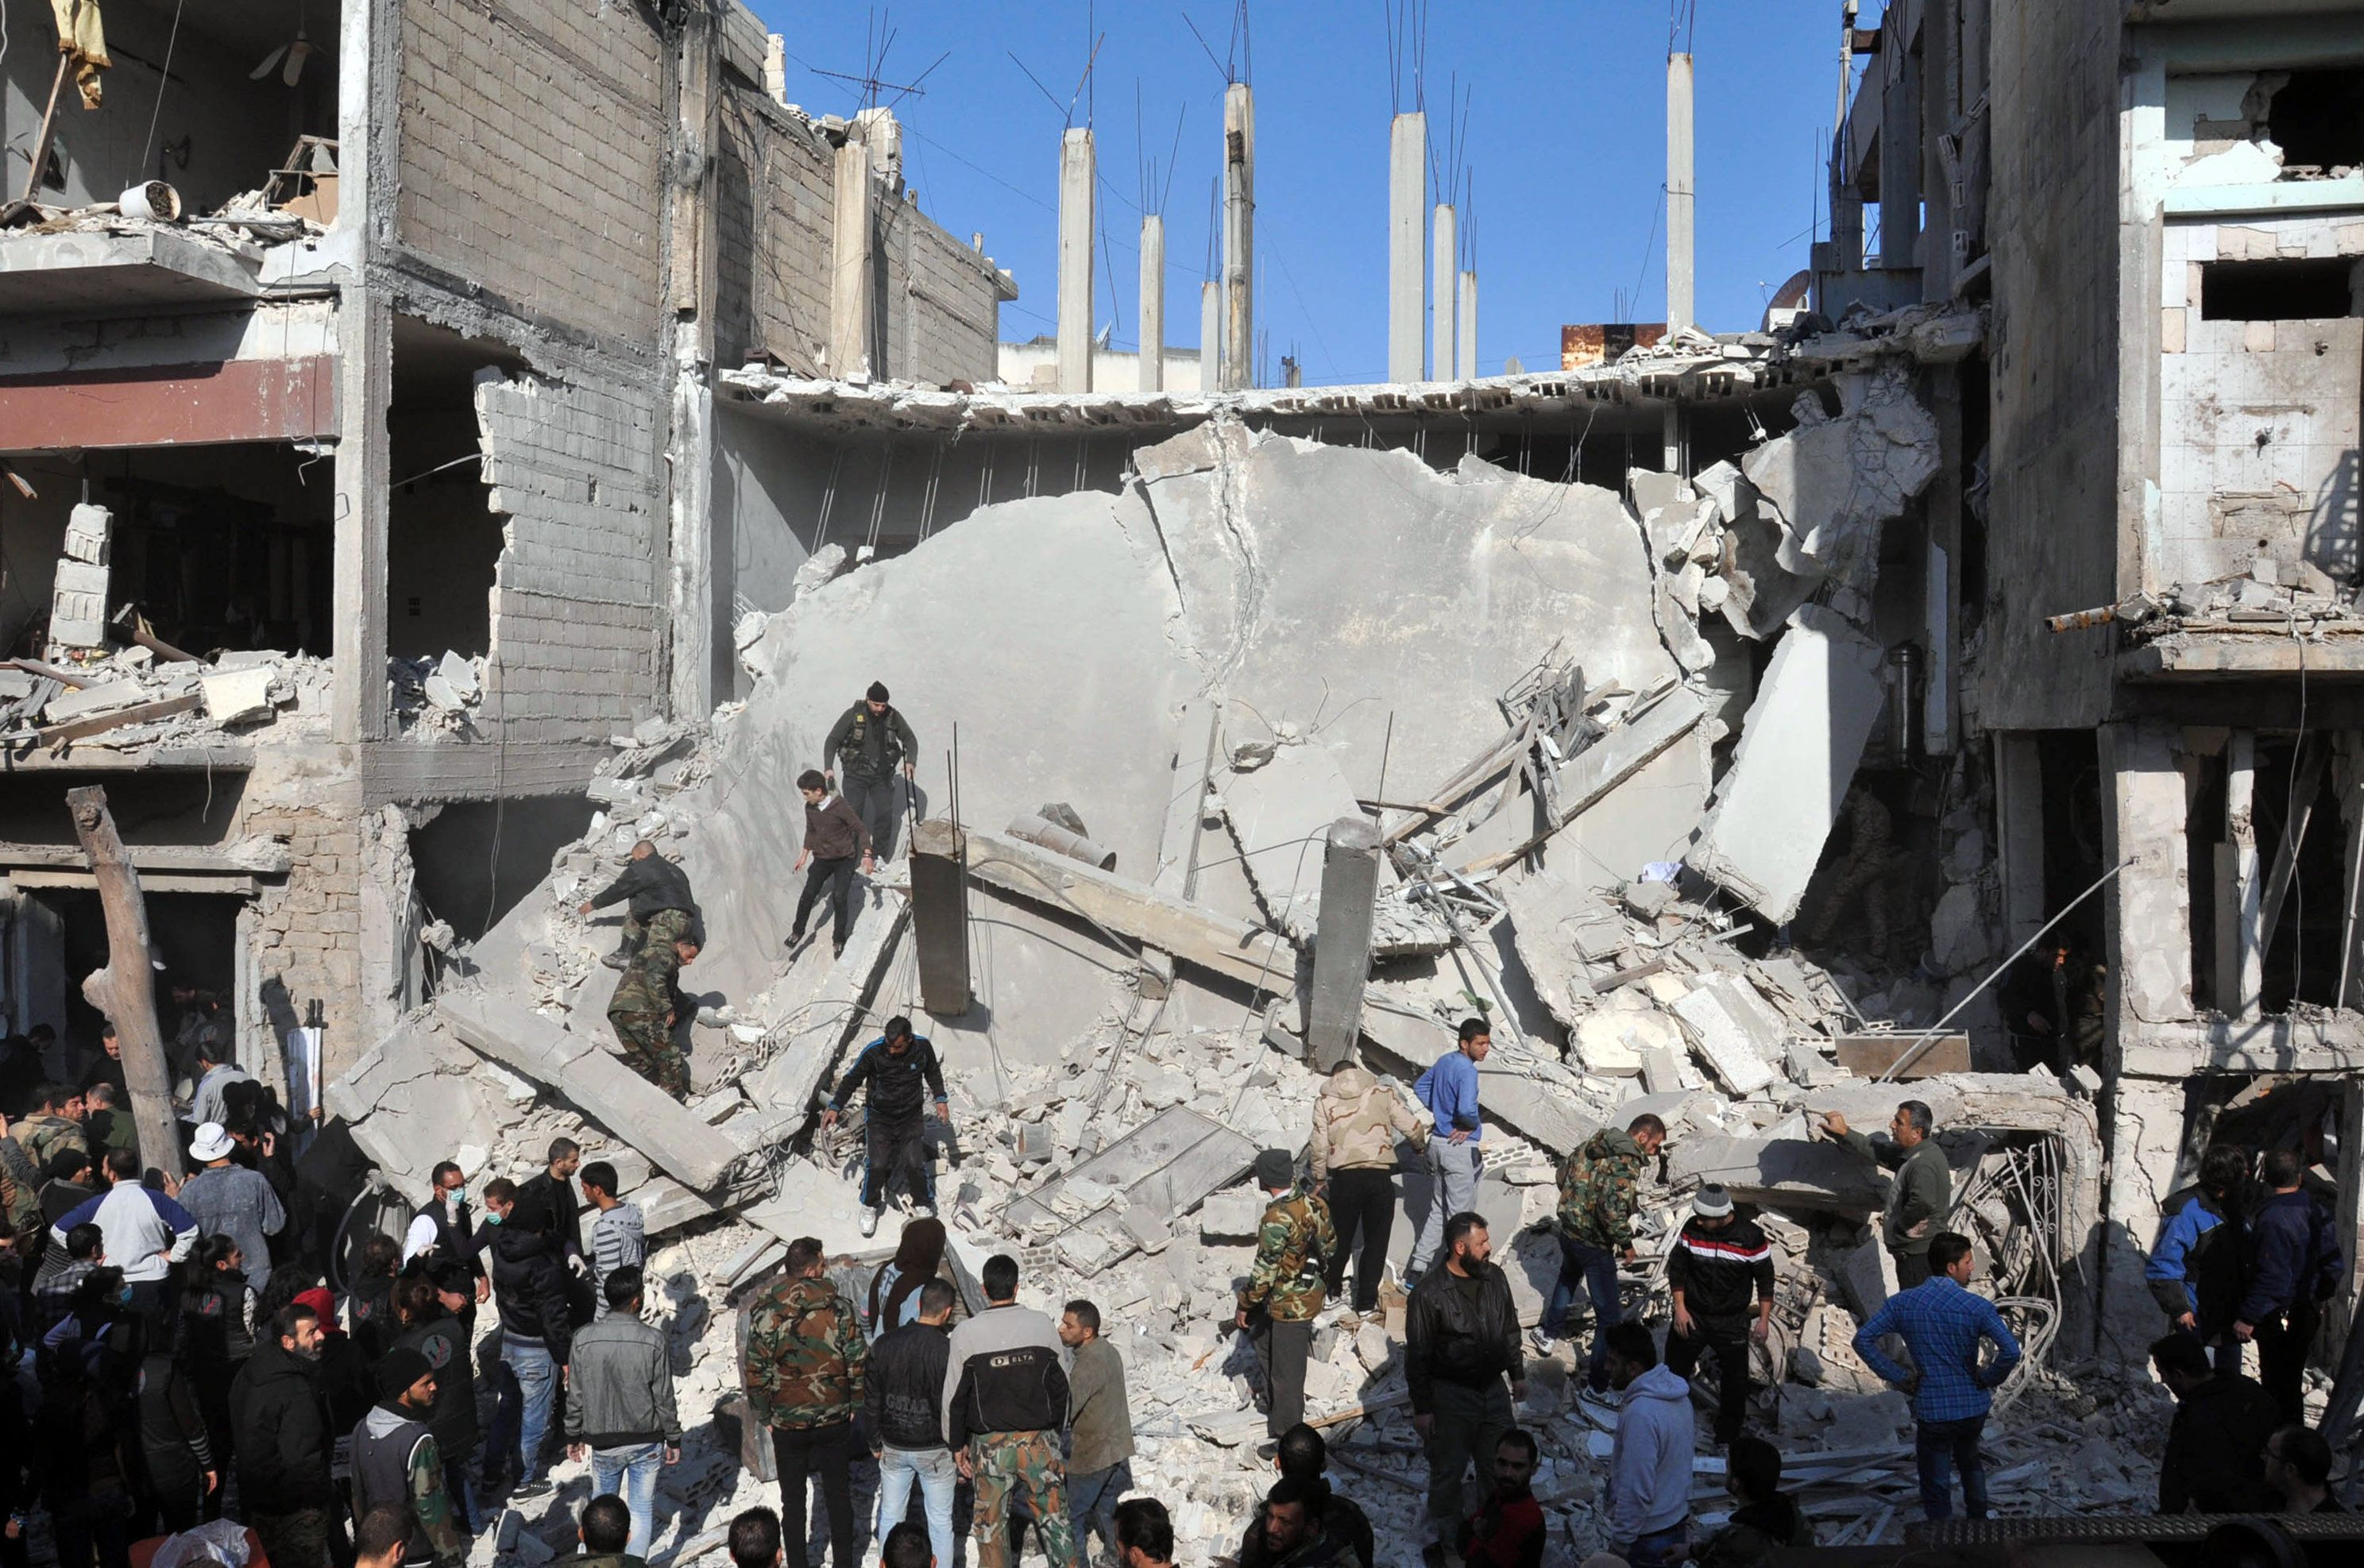 Syrians check the rubble at the site of two car bomb attacks in the al-Zahraa neighbourhood of the central Syrian city of Homs on December 28, 2015. According to the state media at least 14 people were killed in the attack on the neighbourhood which is predominantly Alawite, the minority sect of Syria's ruling clan.  AFP PHOTO / STR / AFP / STR        (Photo credit should read STR/AFP/Getty Images)